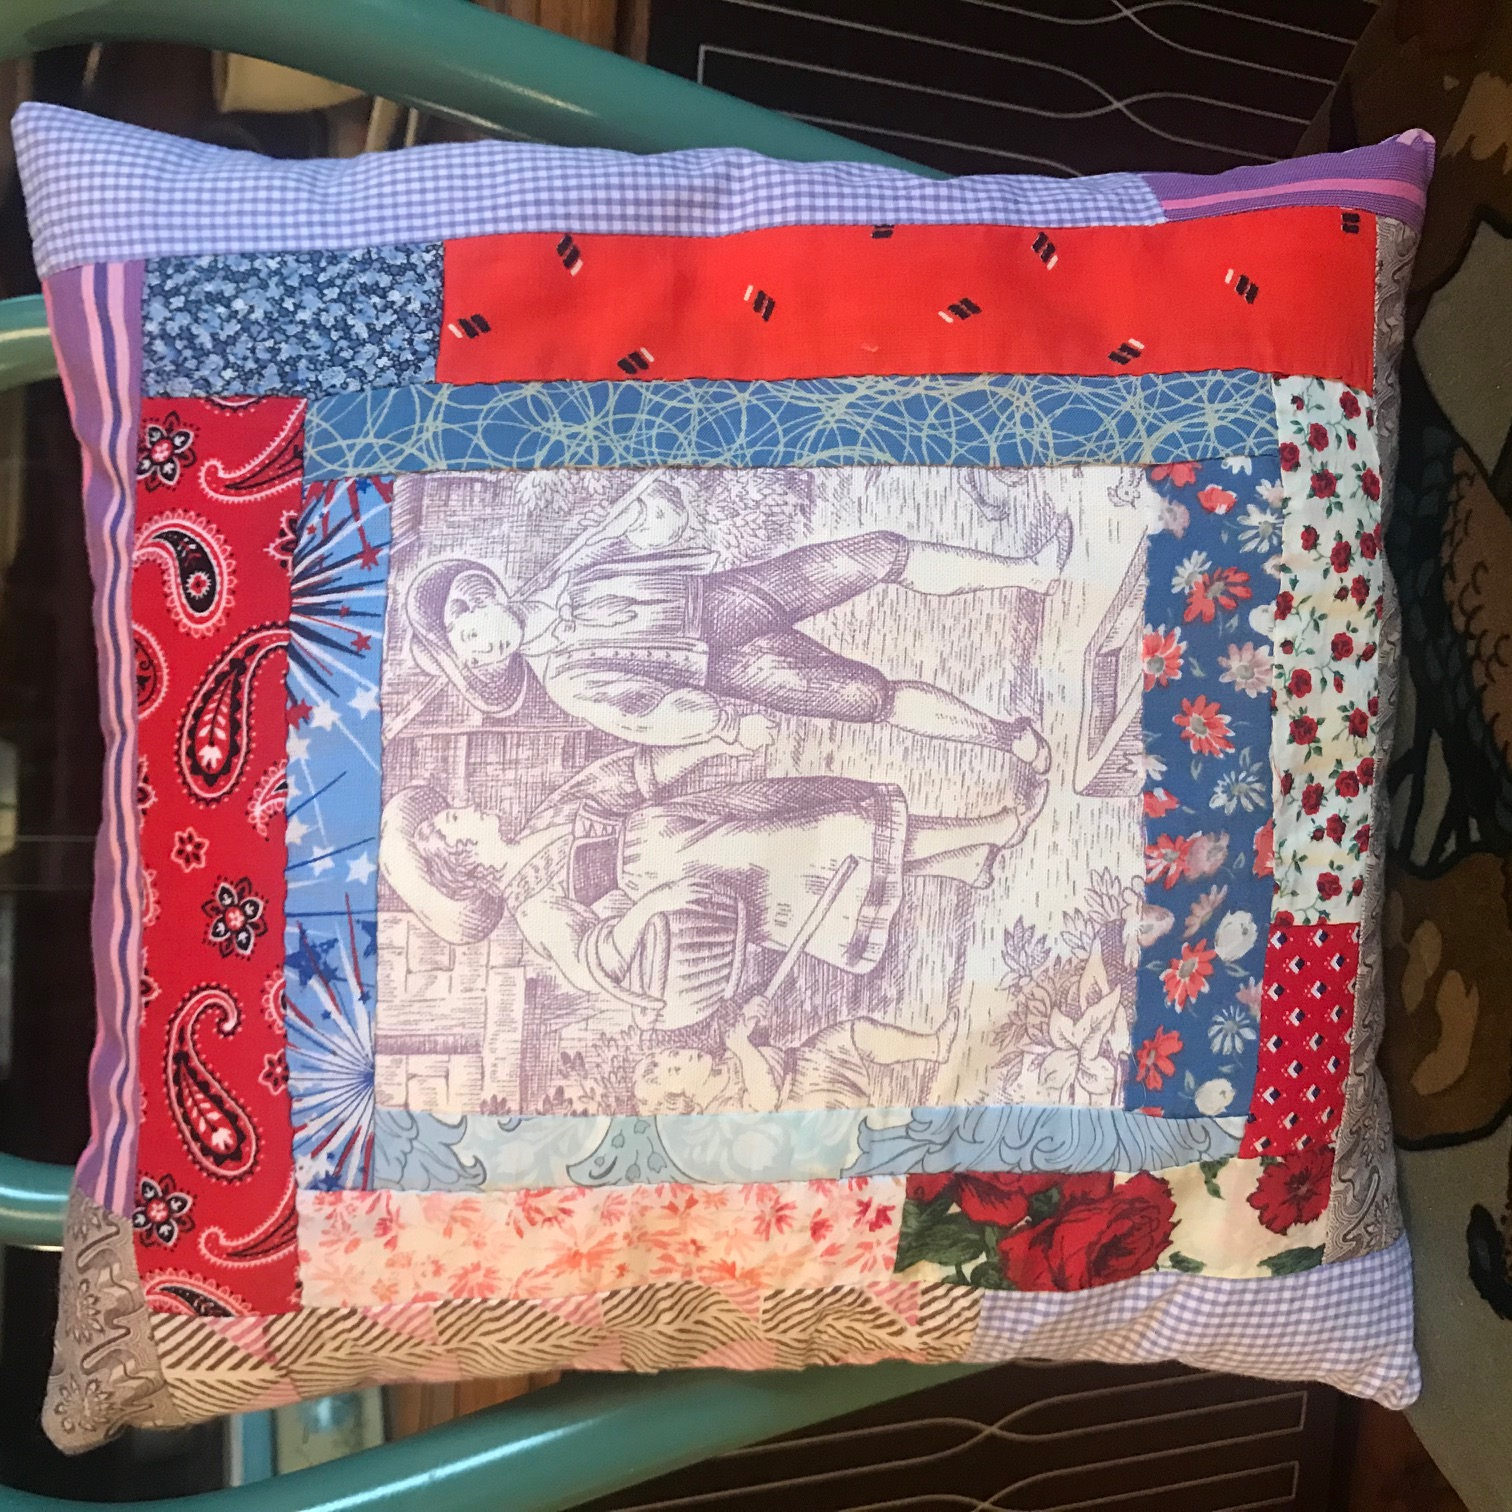 Whole toile pillow